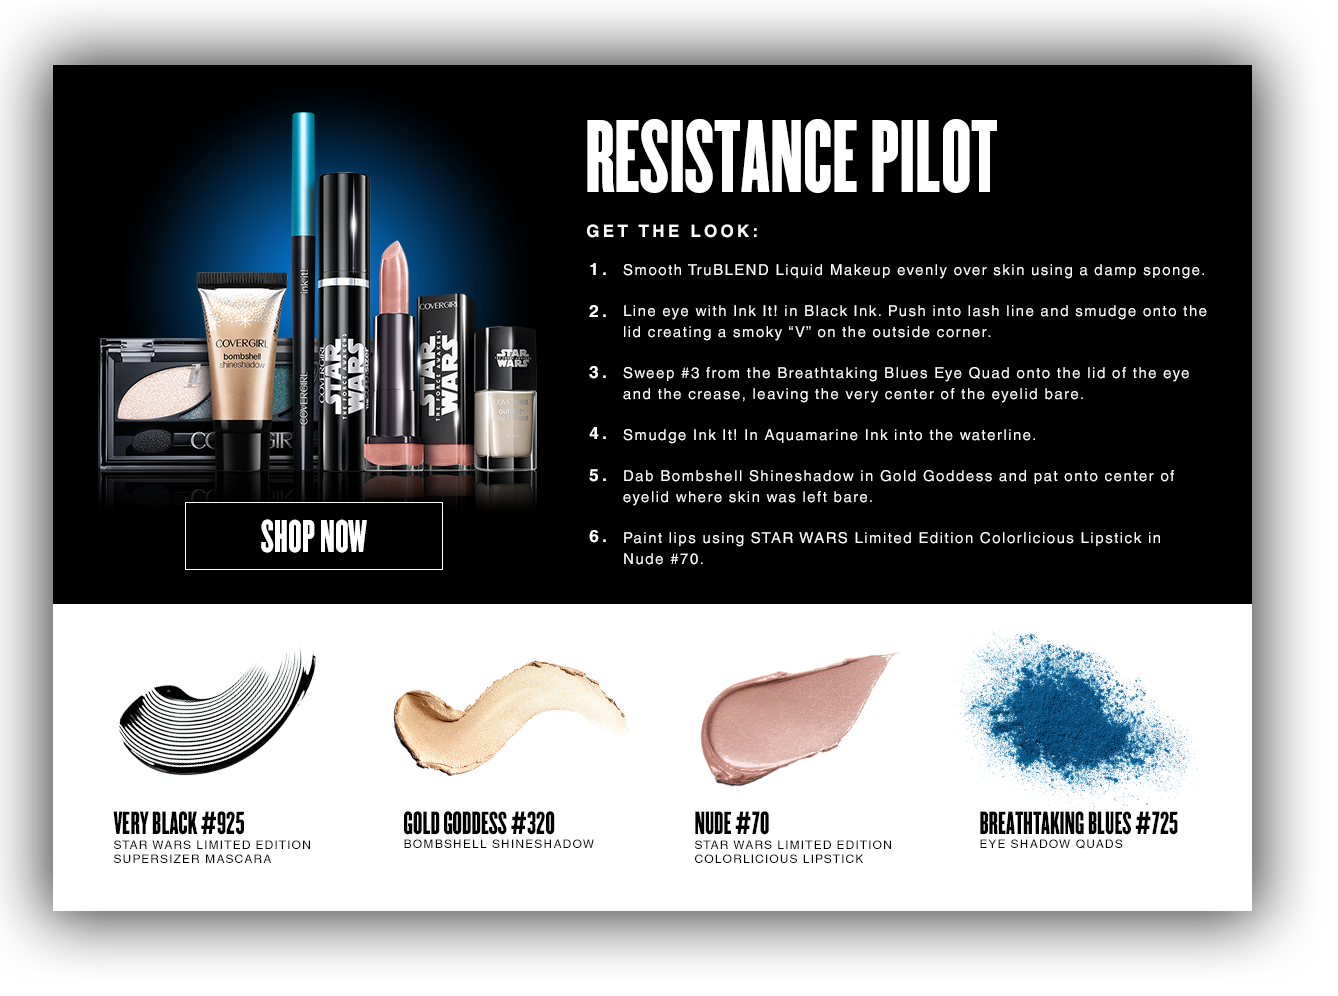 Star wars limited edition collection i covergirl close overlay resistance pilot facechart nvjuhfo Images